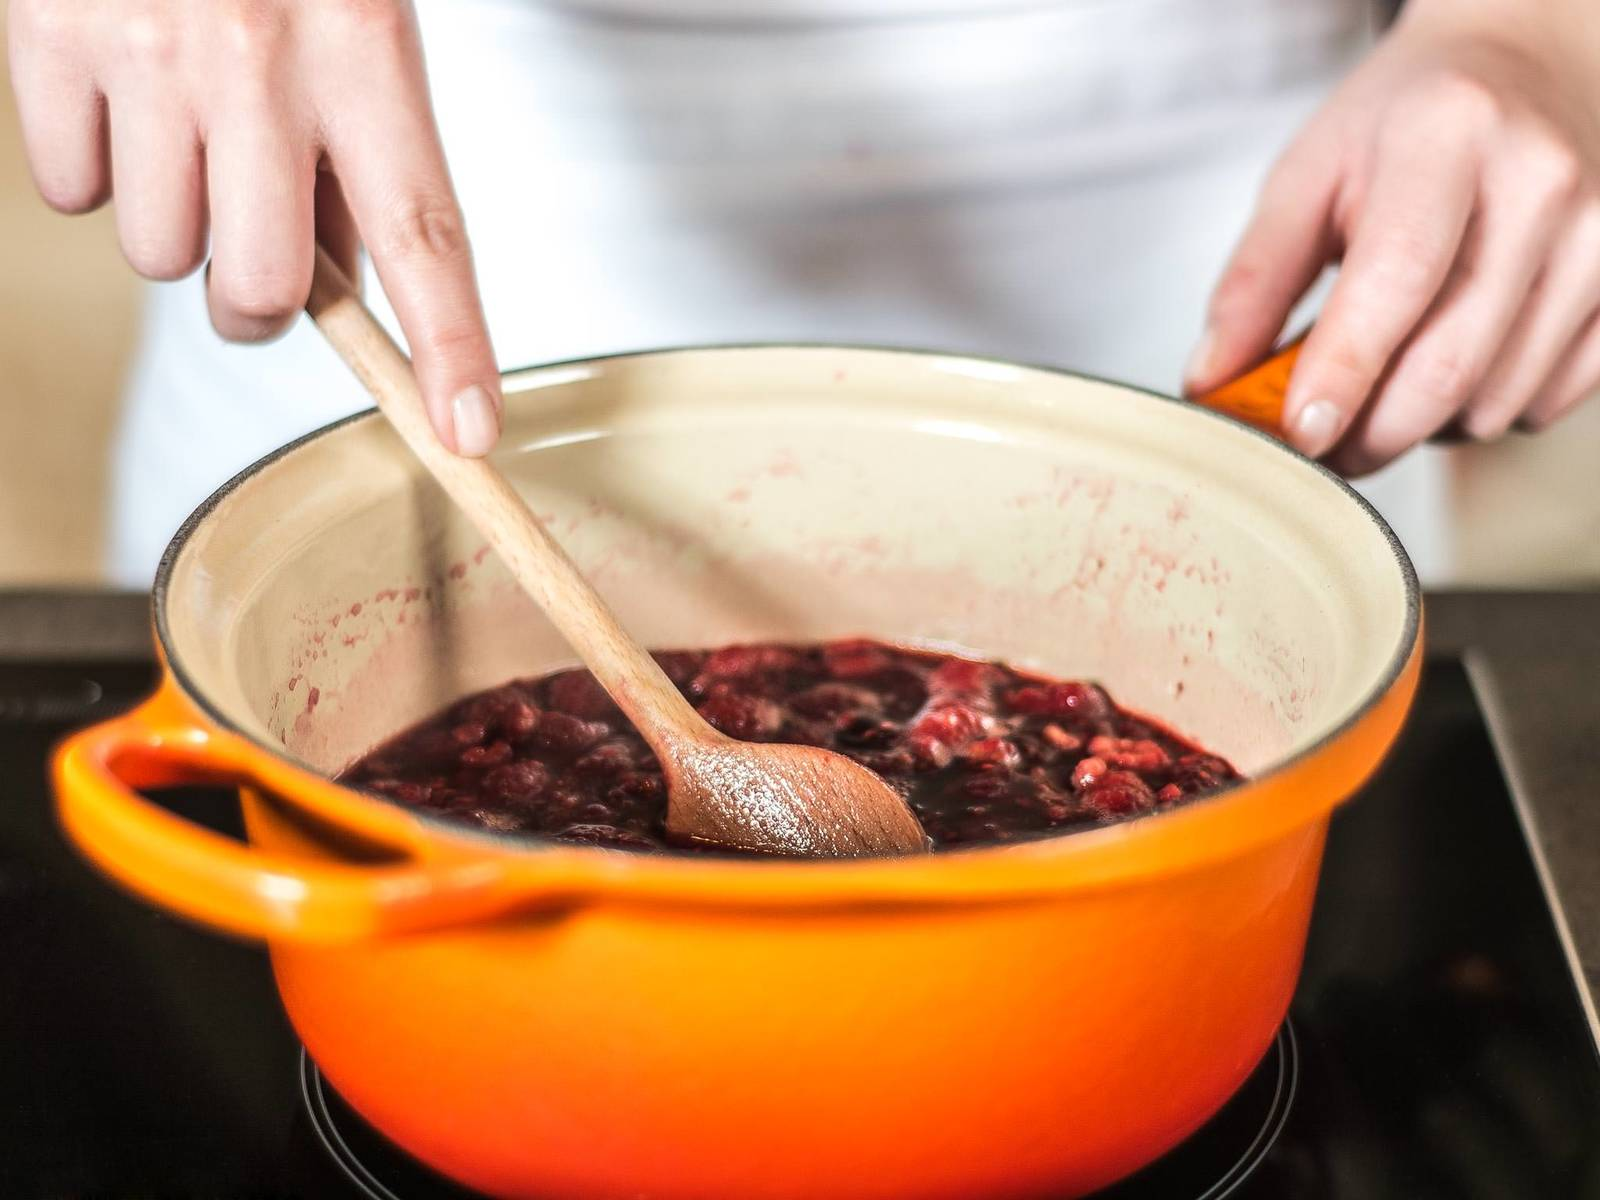 Boil water with sugar, add raspberries and let simmer for approx. 10 – 12 min. on low heat.